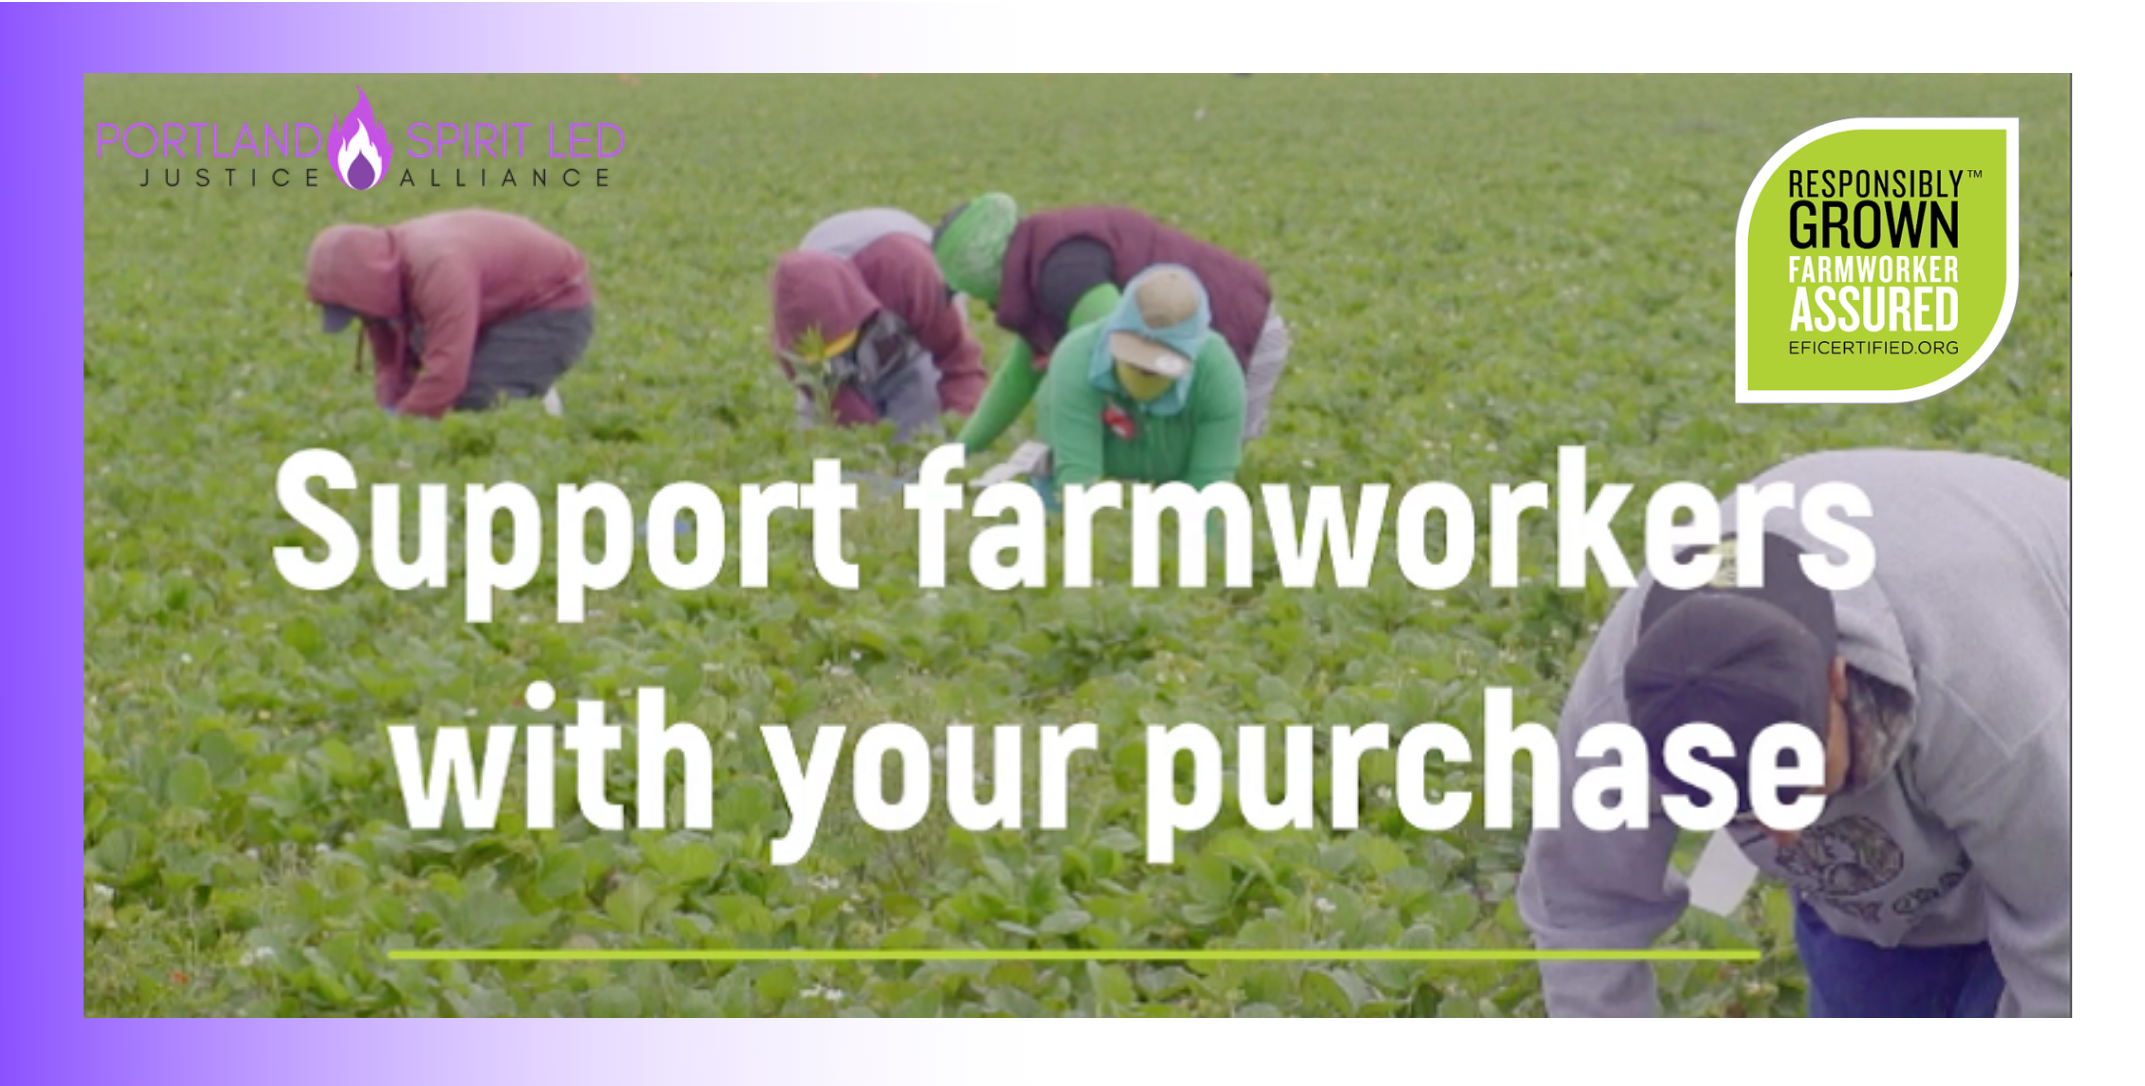 Farmworkers_Action_Alert_Graphic!_(1).png